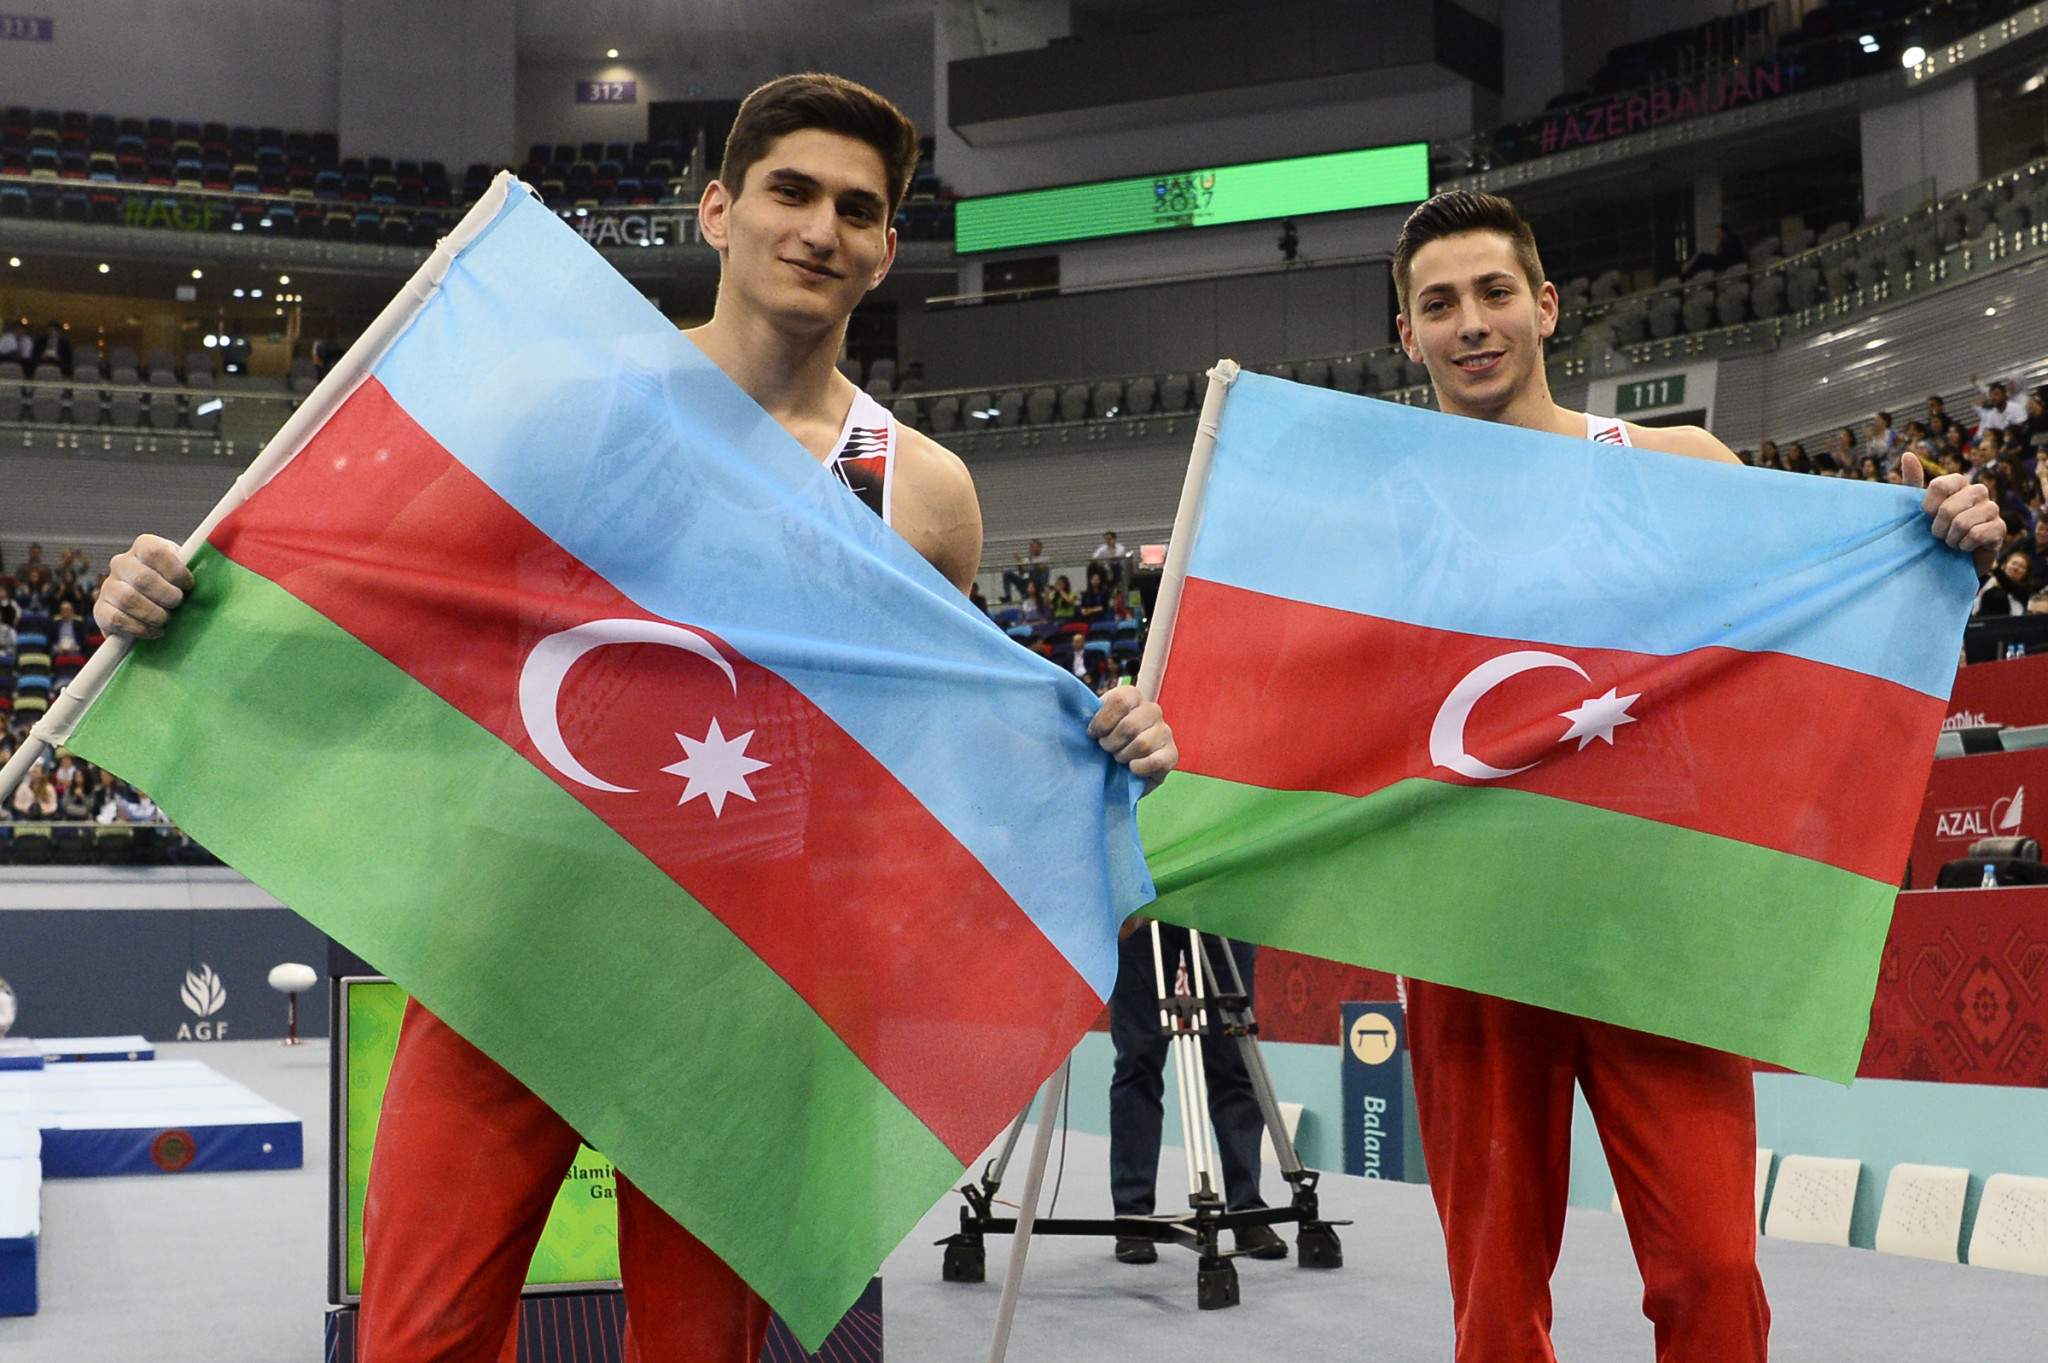 Azerbaijan has become an increasingly prominent gymnastics nation ©Getty Images